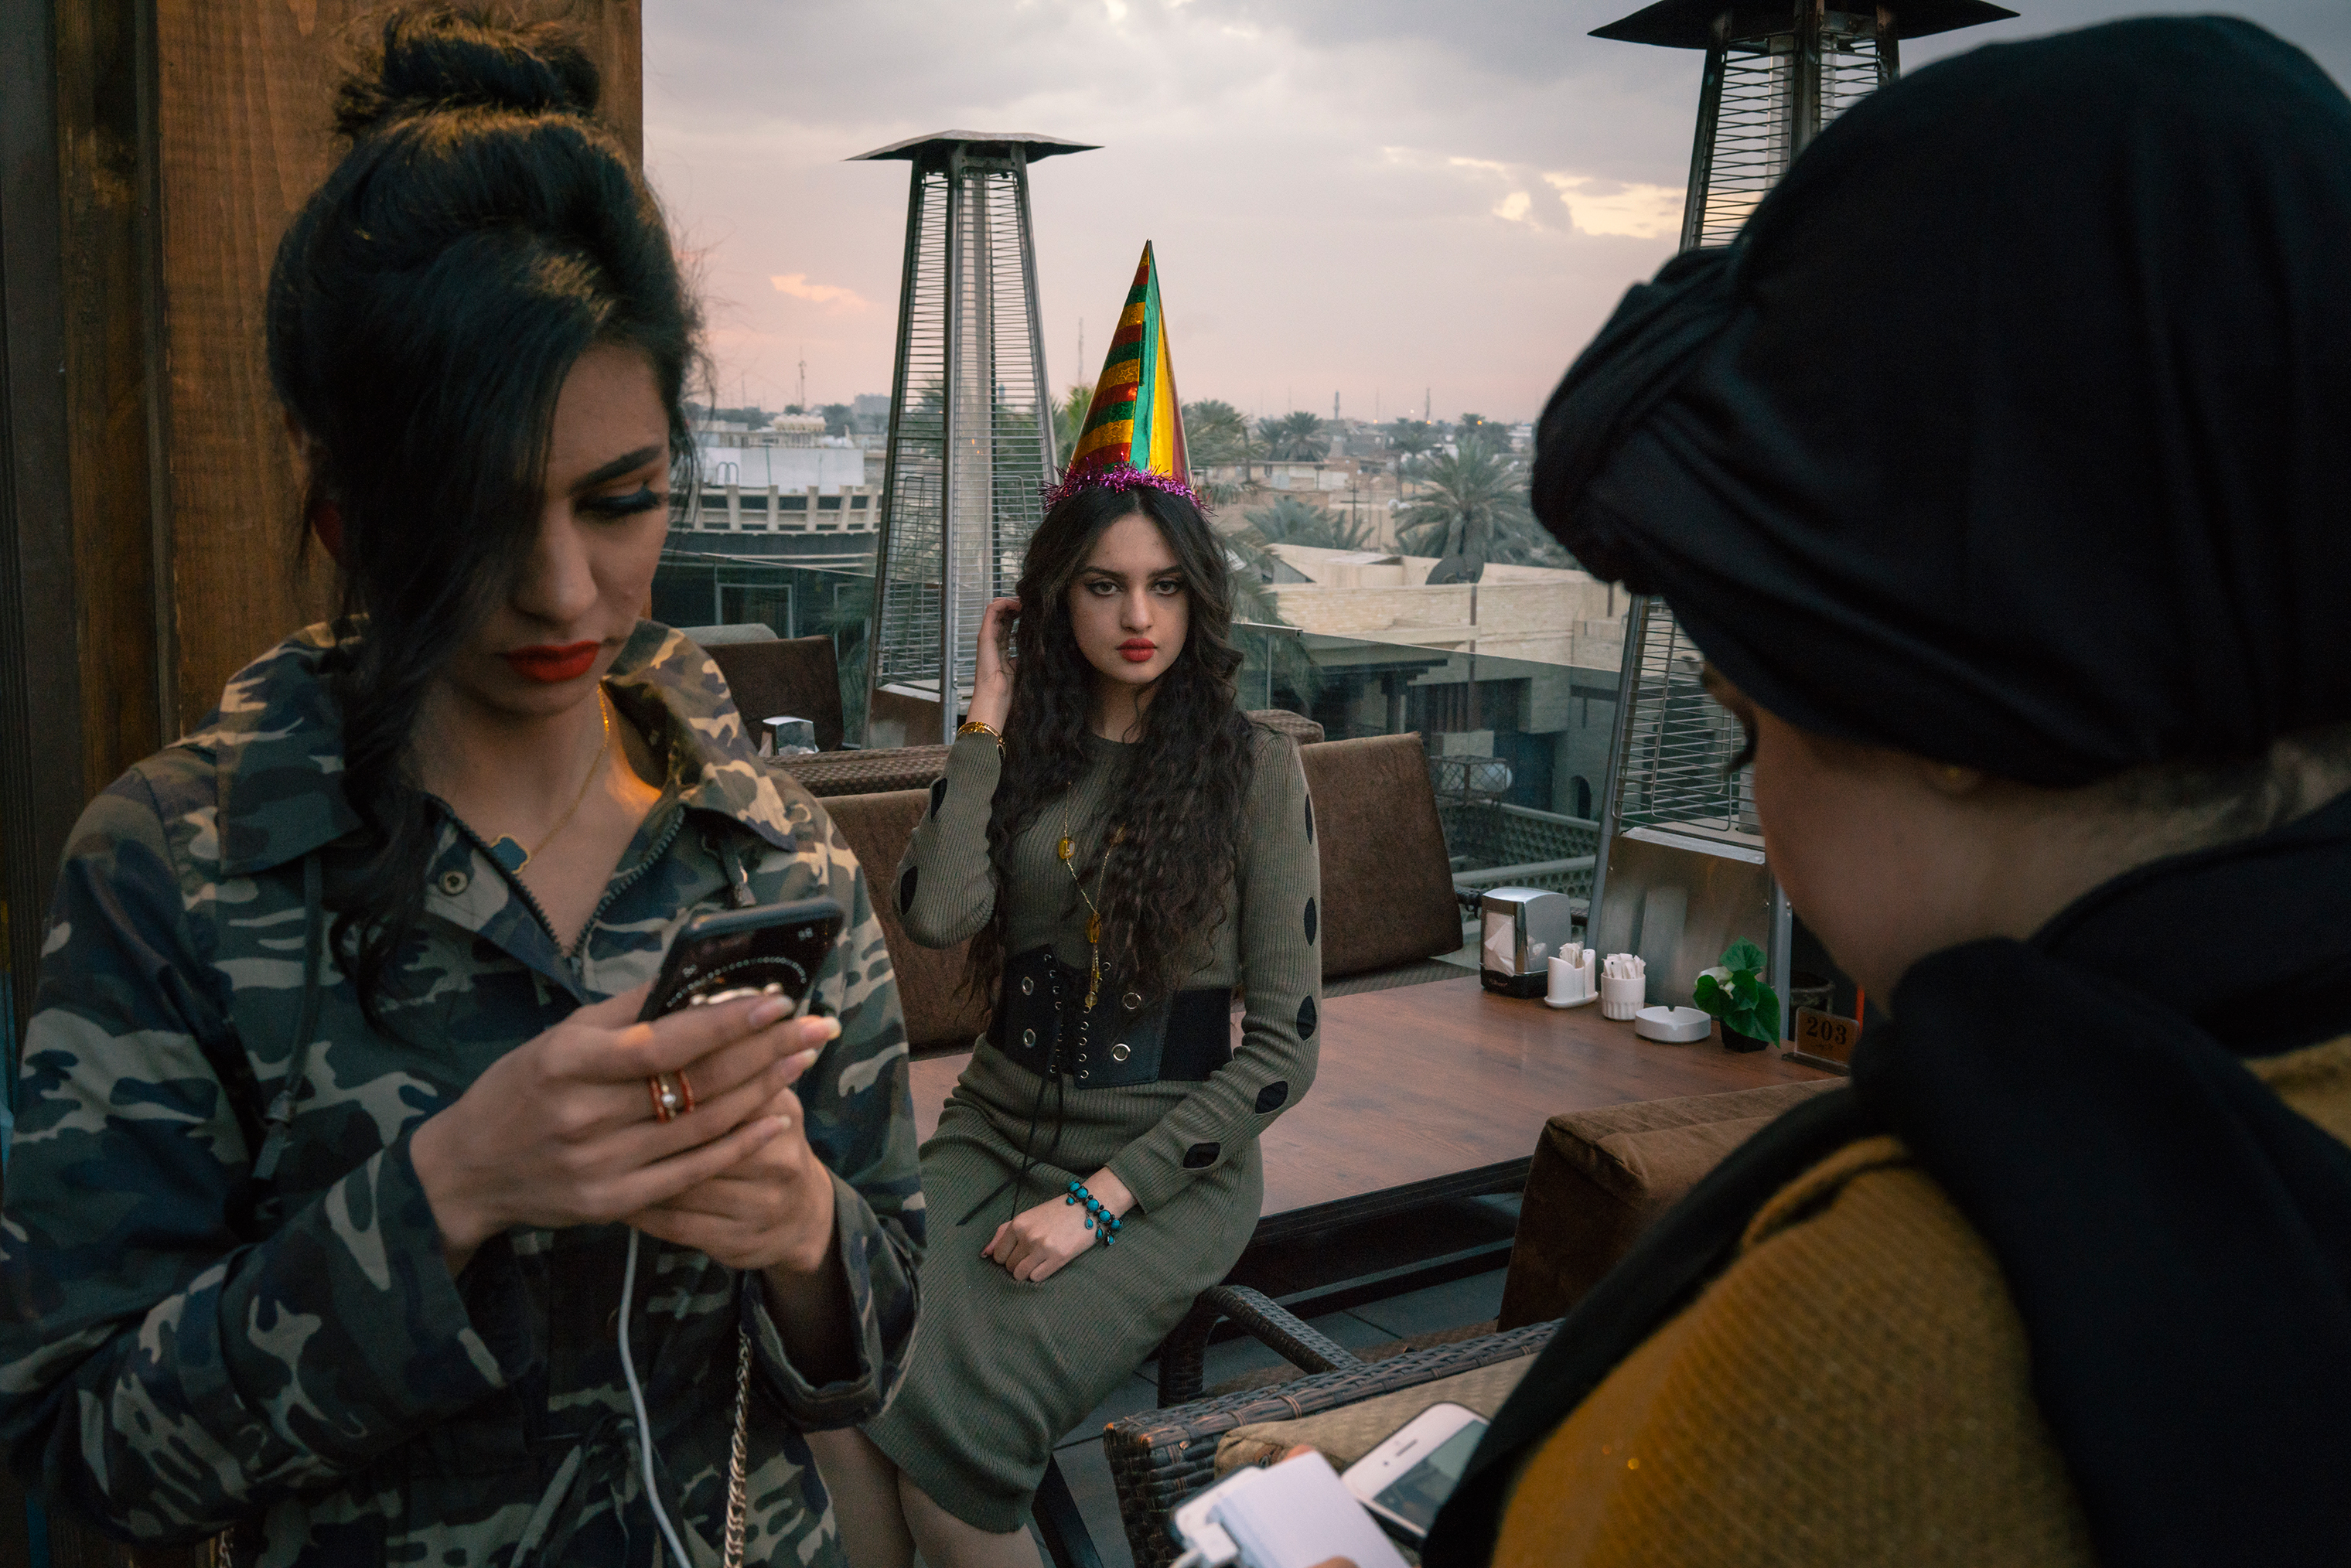 Nariman Abujahar, center, a computer engineering student, celebrates her 23rd birthday with friends on a restaurant's rooftop terrace in the Mansour district of Baghdad on Jan. 27.